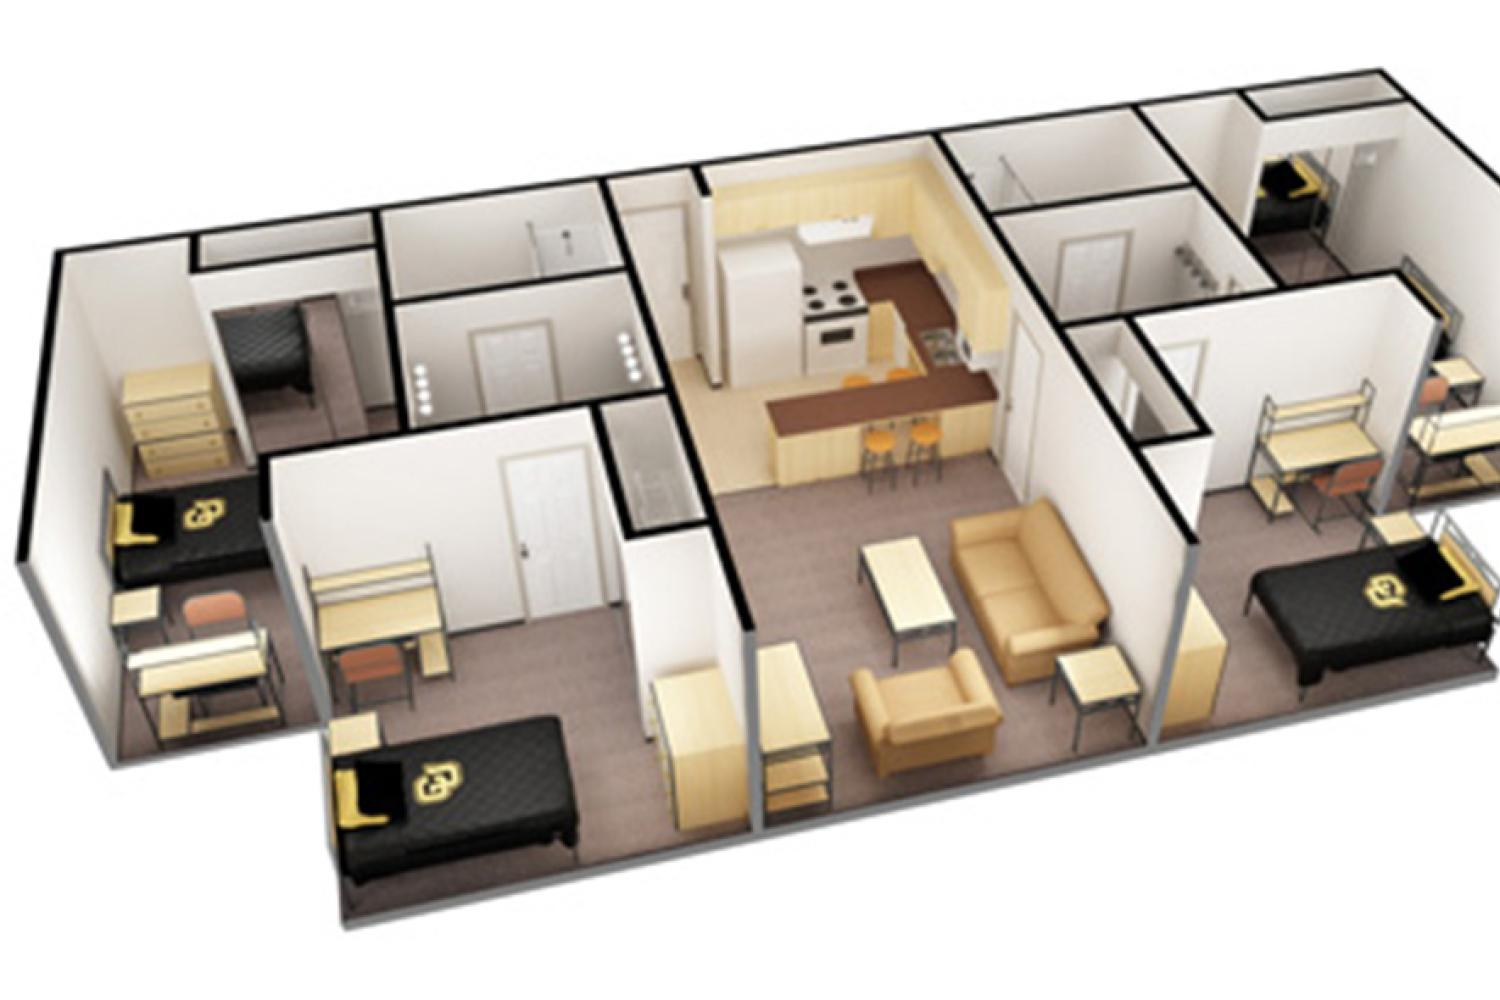 3D apartment layout - 4 single rooms surrounding living room and kitchen, two bathrooms